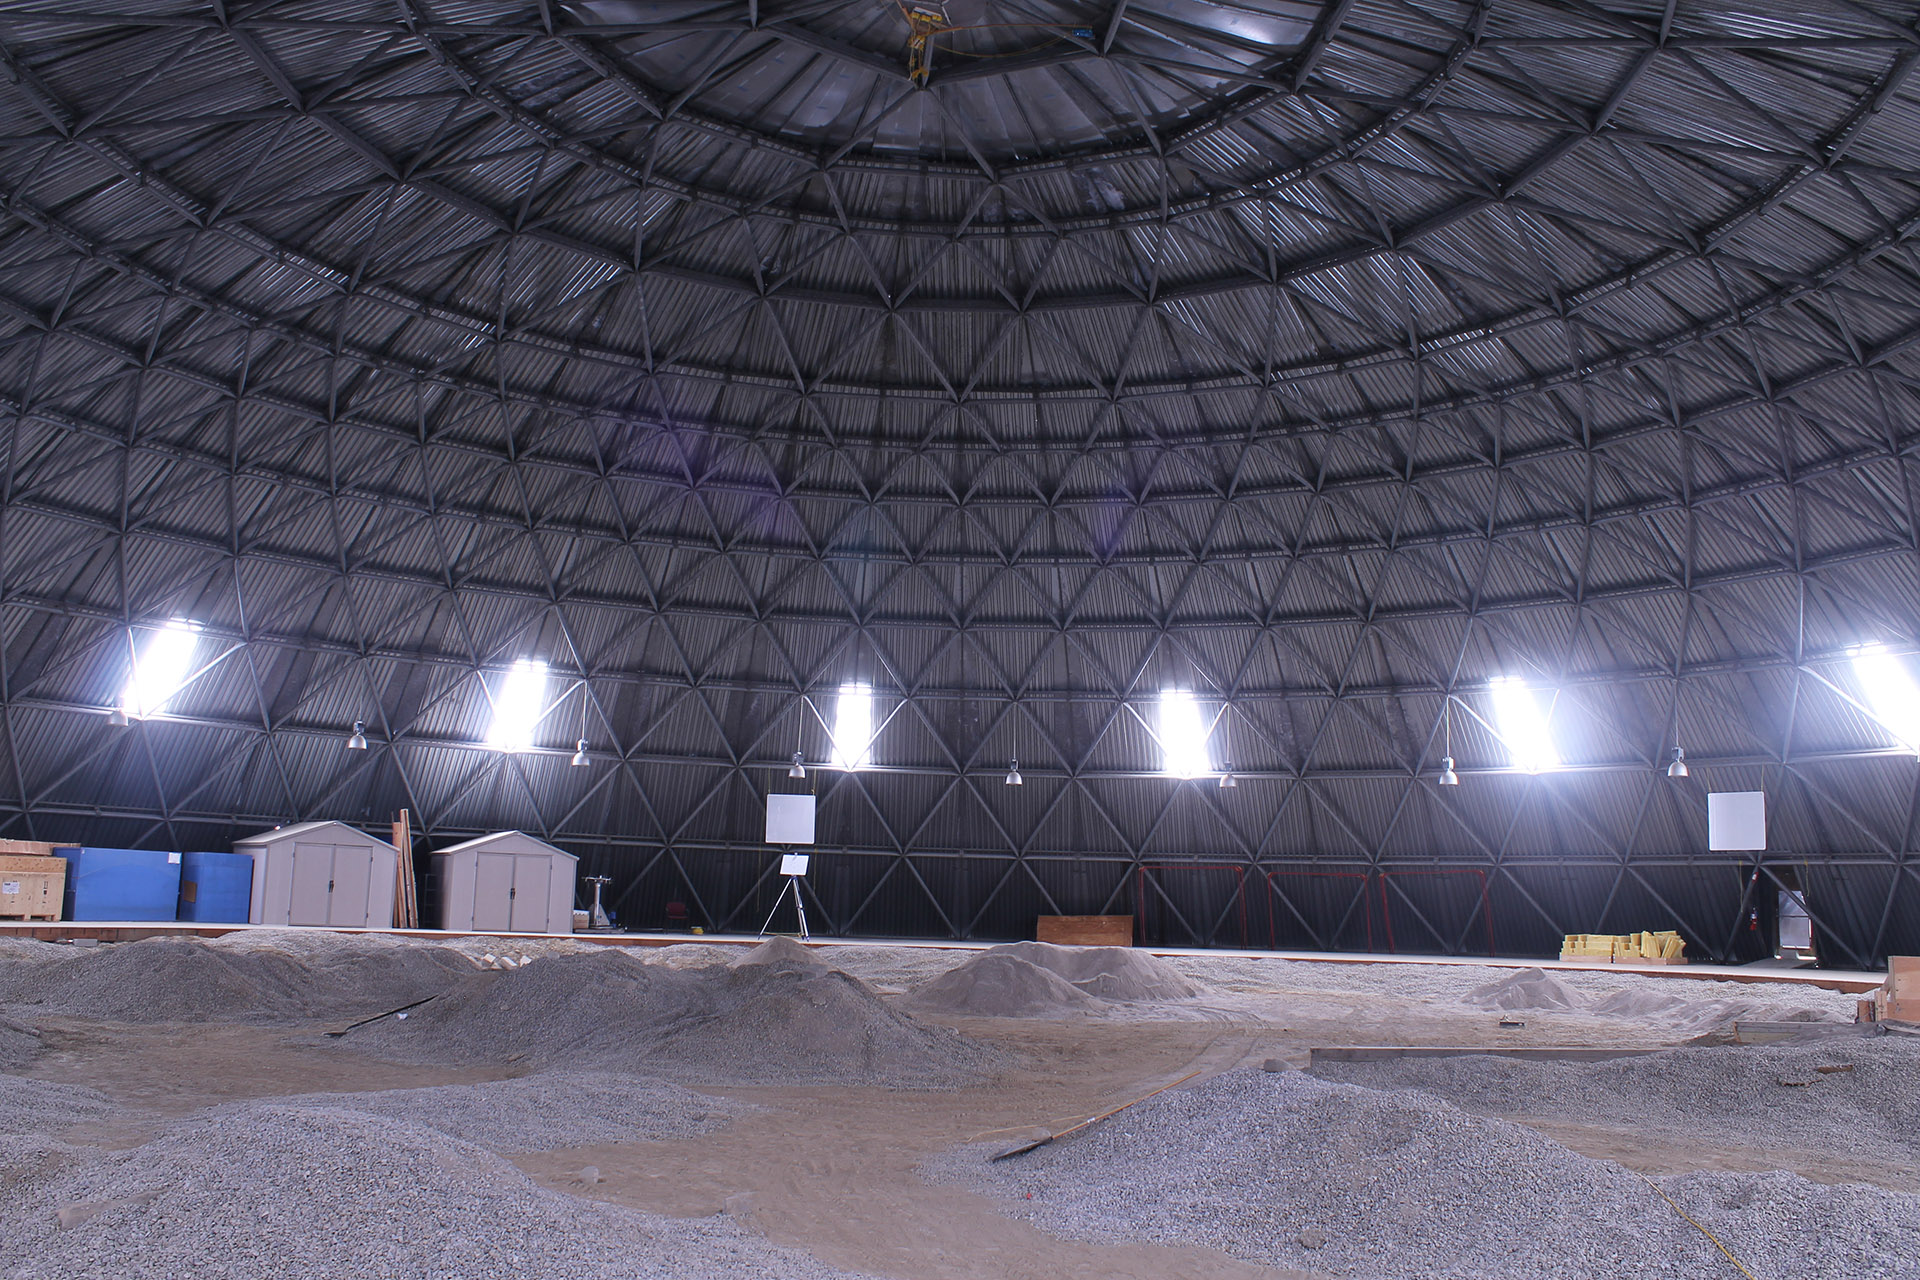 The UTIAS Mars Dome.